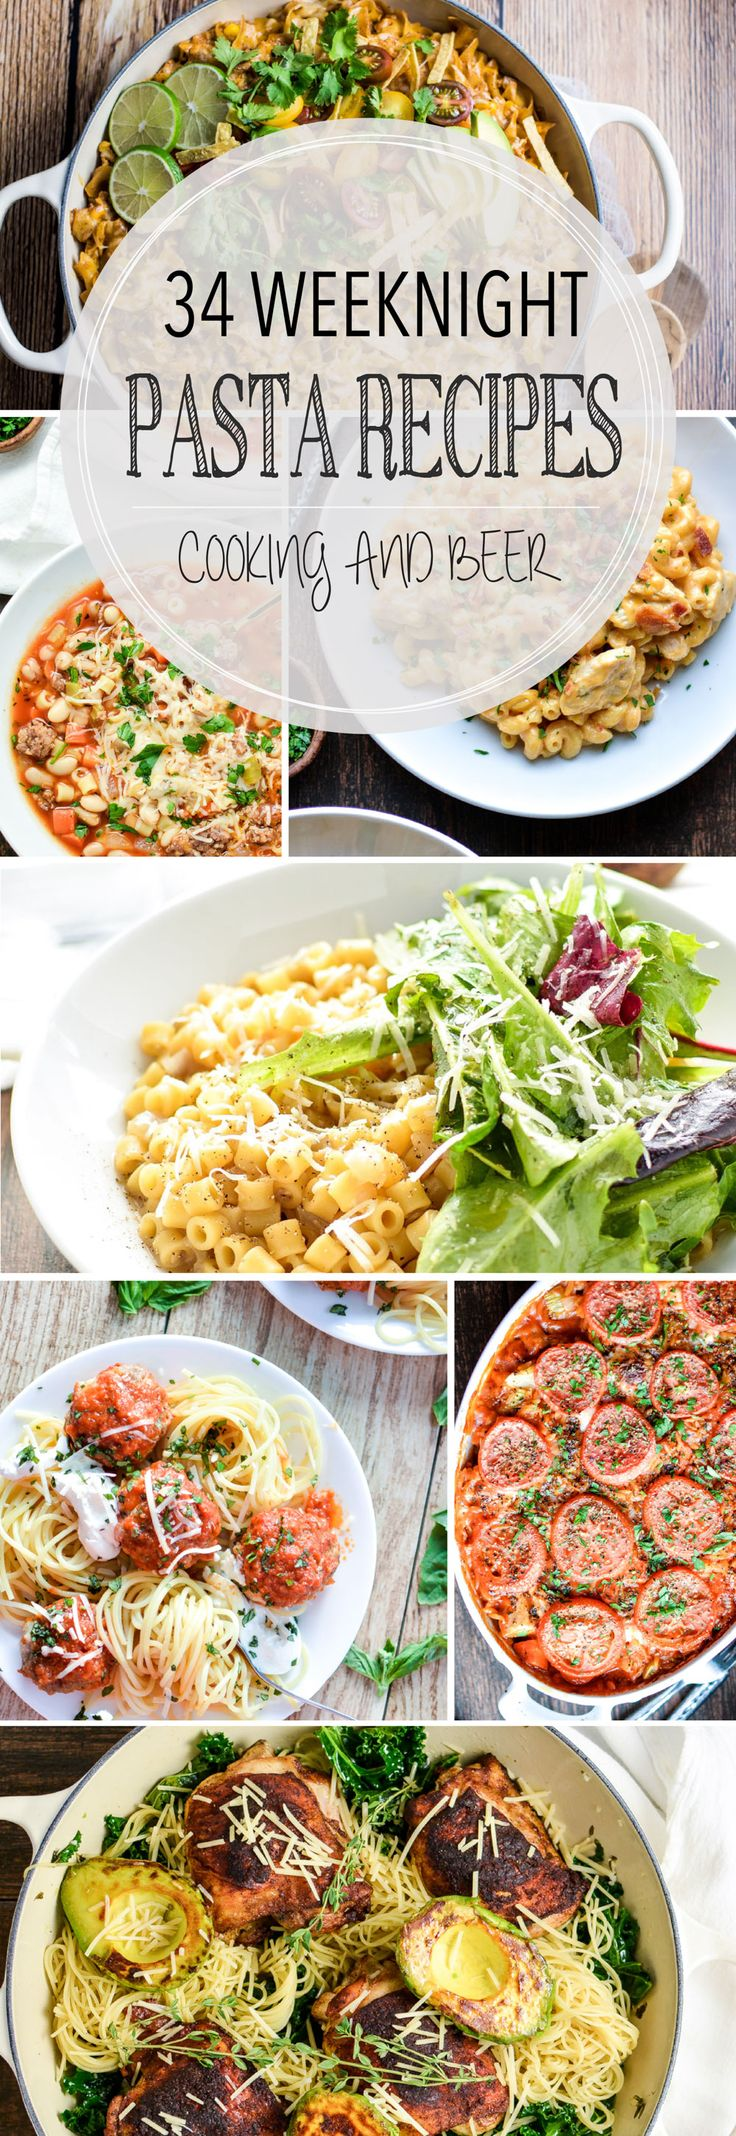 1000+ images about Pasta on Pinterest | Pasta salad, Mac cheese and ...